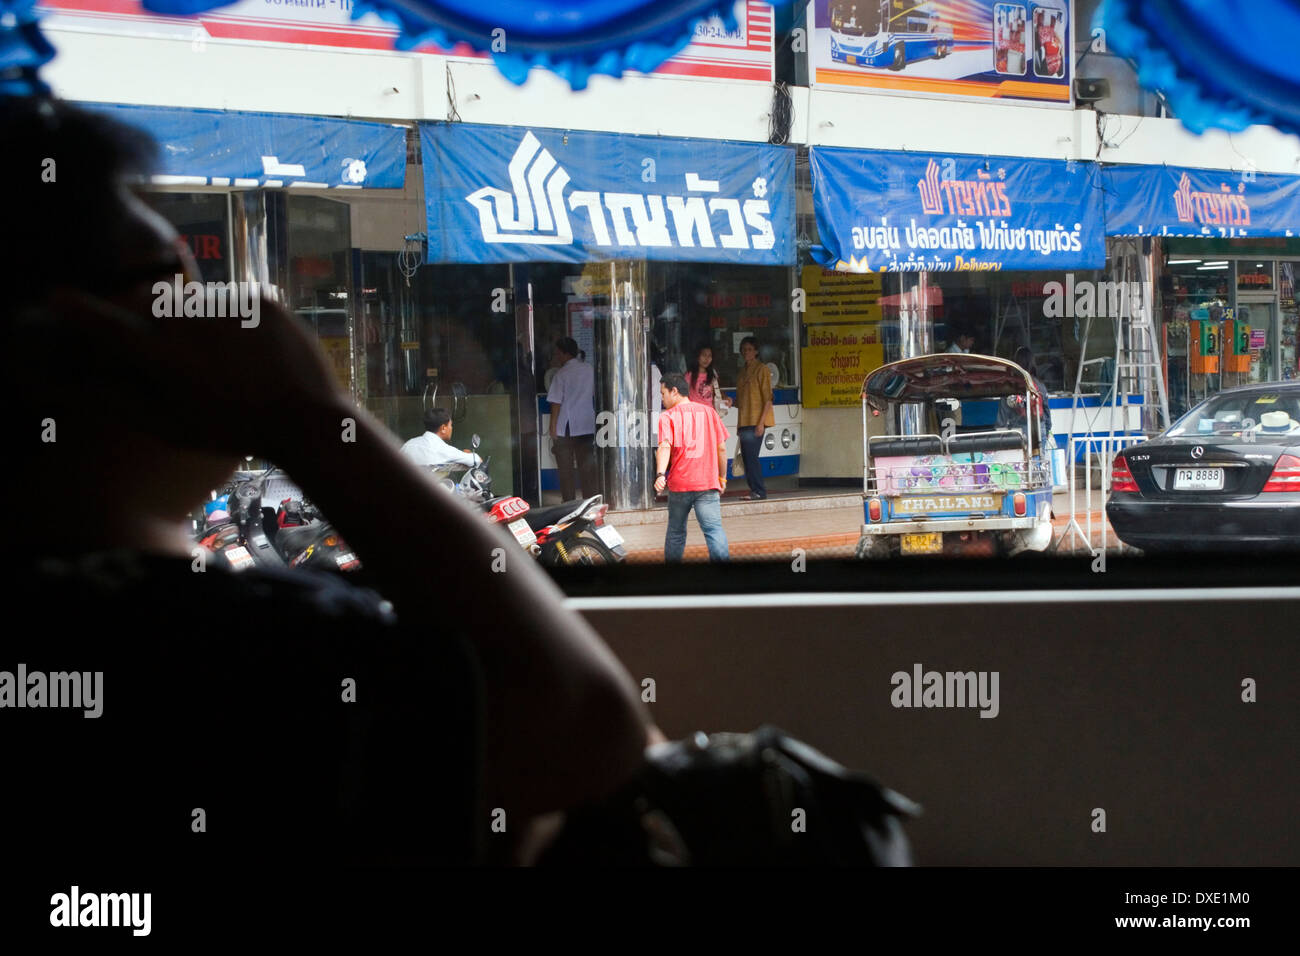 A view fom a songthaew includes people leading their daily lives on a city street in Khorat, (Nakon Ratchasima) Thailand. - Stock Image